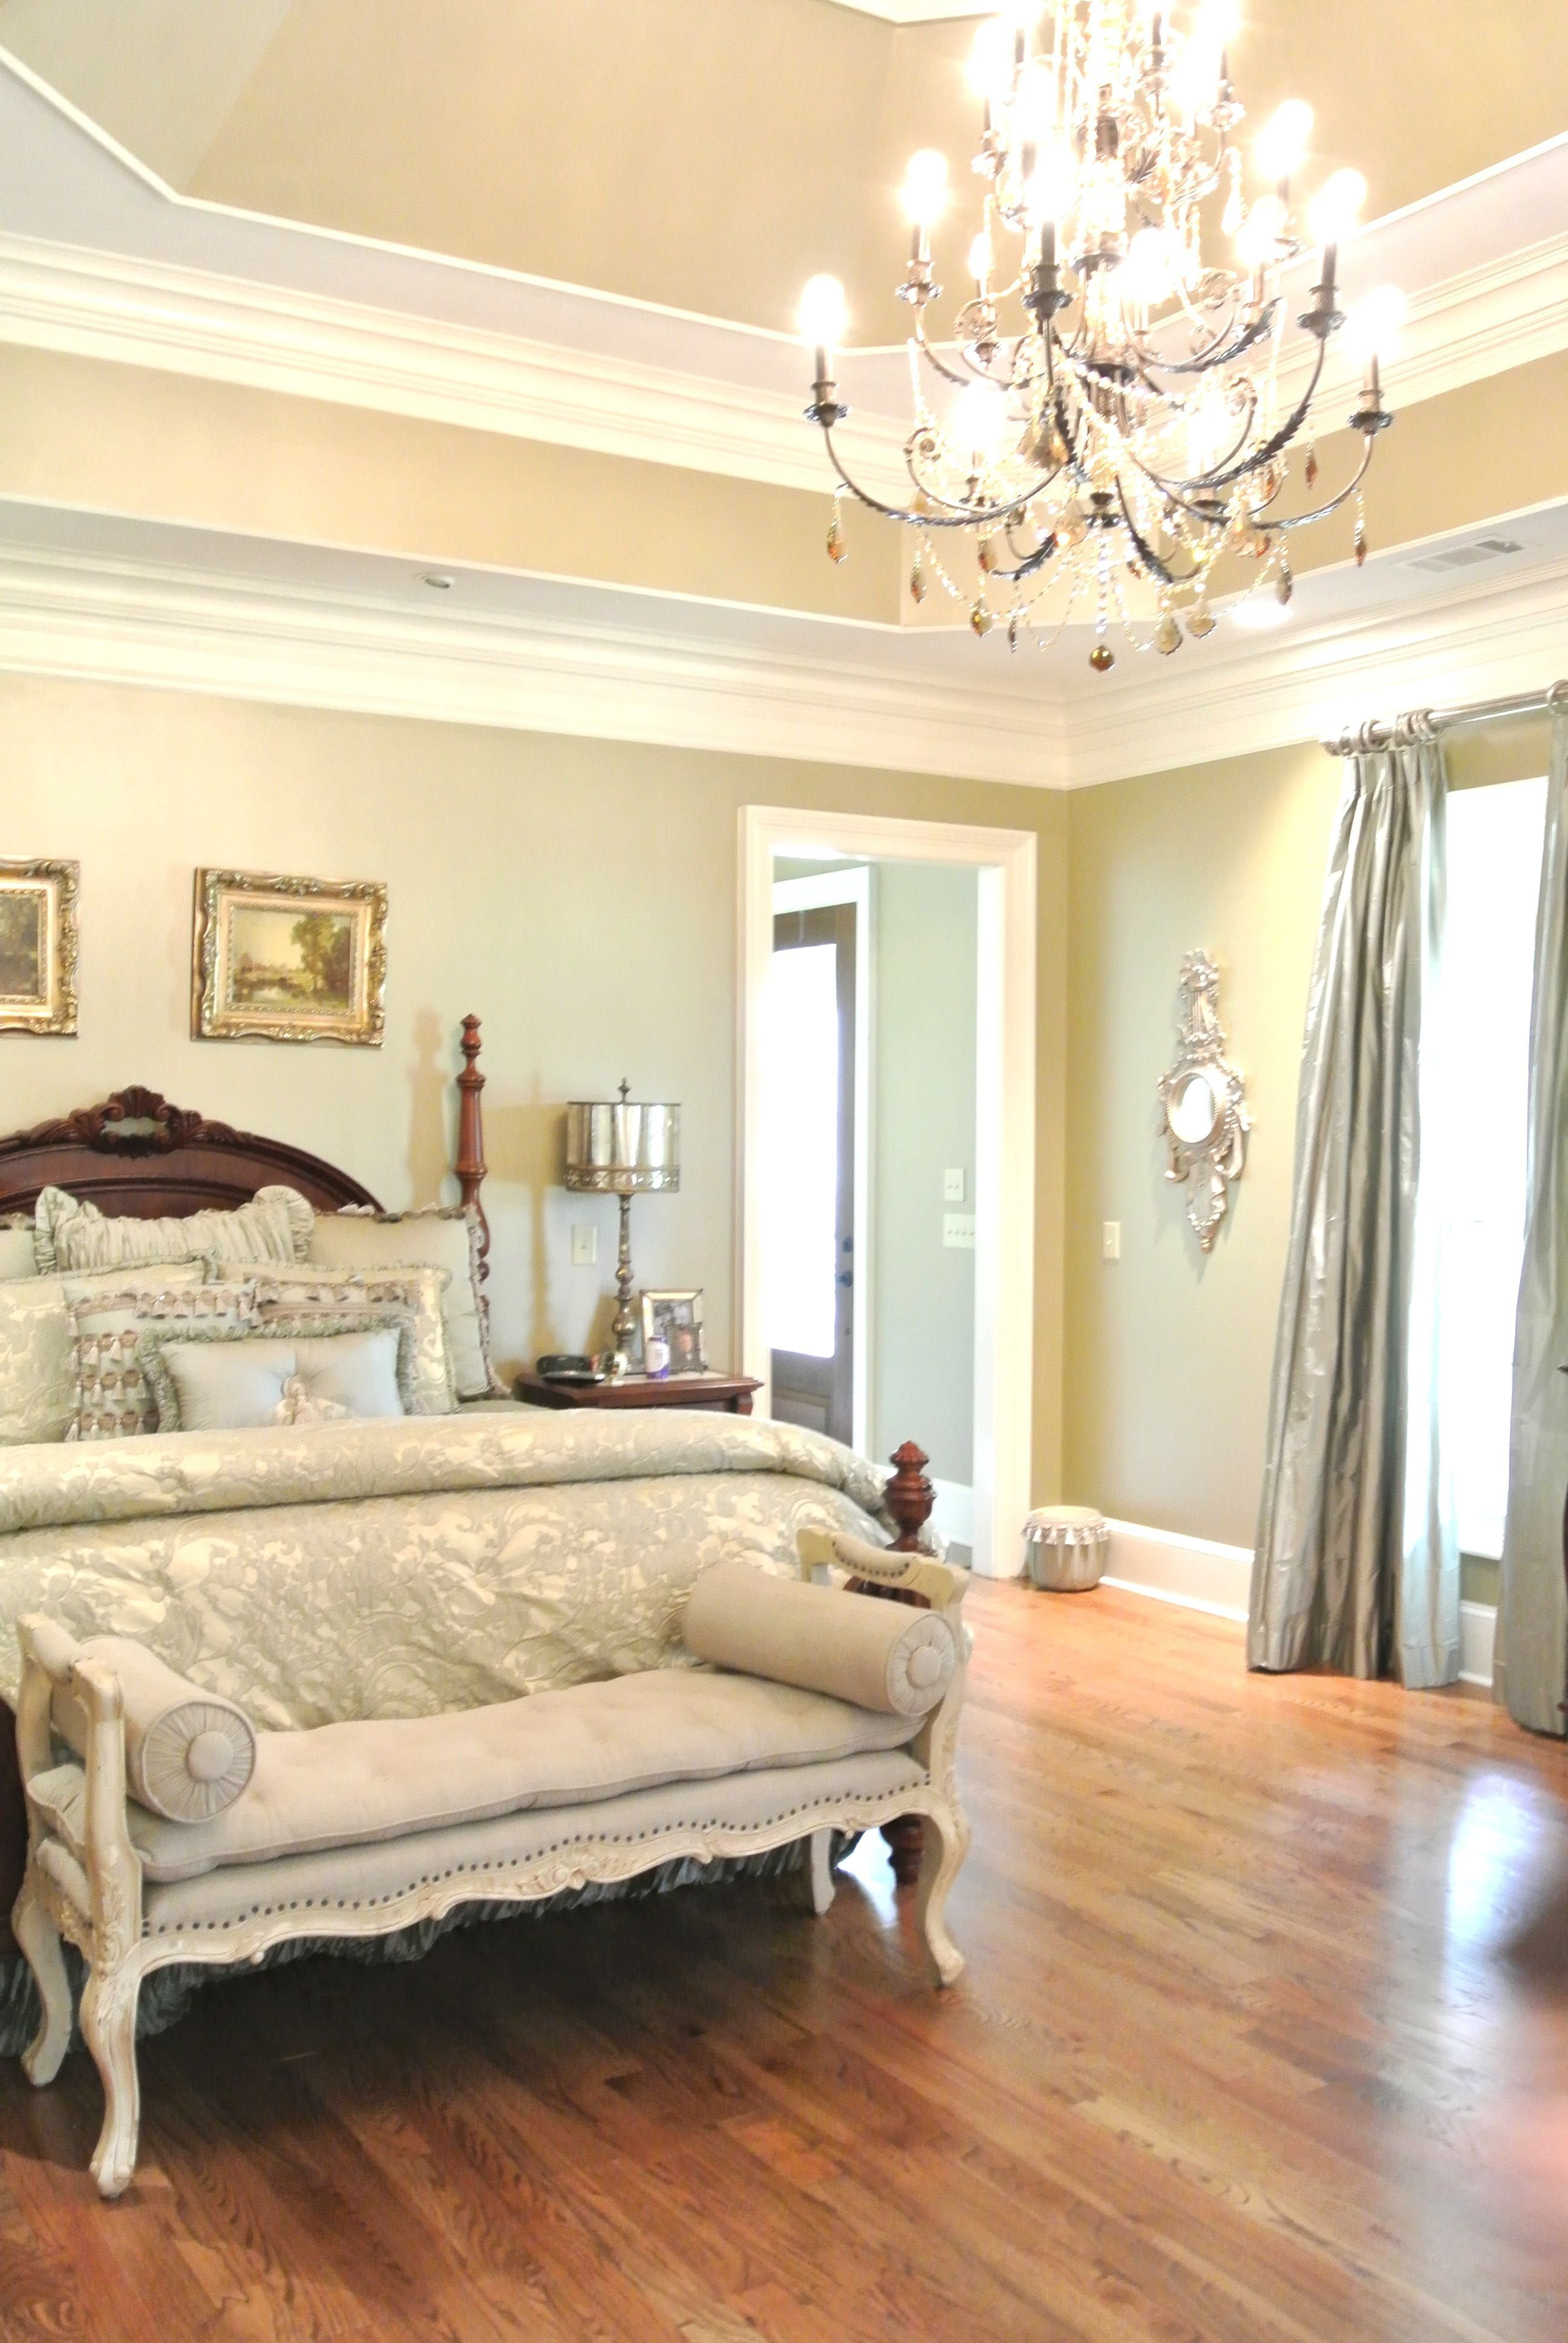 Best Master Bedroom With Tray Ceiling Home Decor Pinterest With Pictures